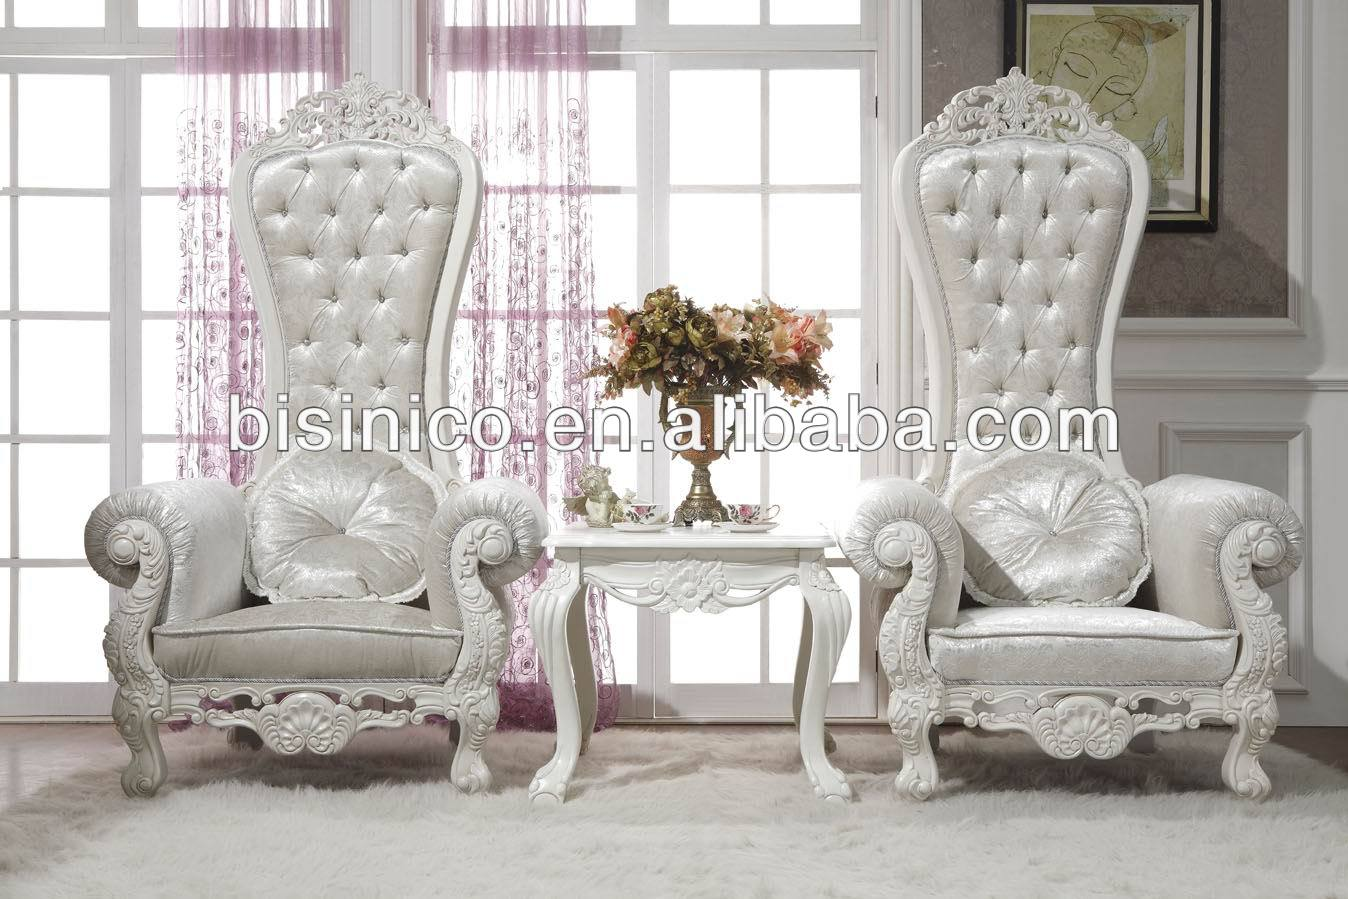 luxury chairs for living room luxurious alibaba luxury living room furnitureelegant royal queen chairs set buy anne furnitureluxury european